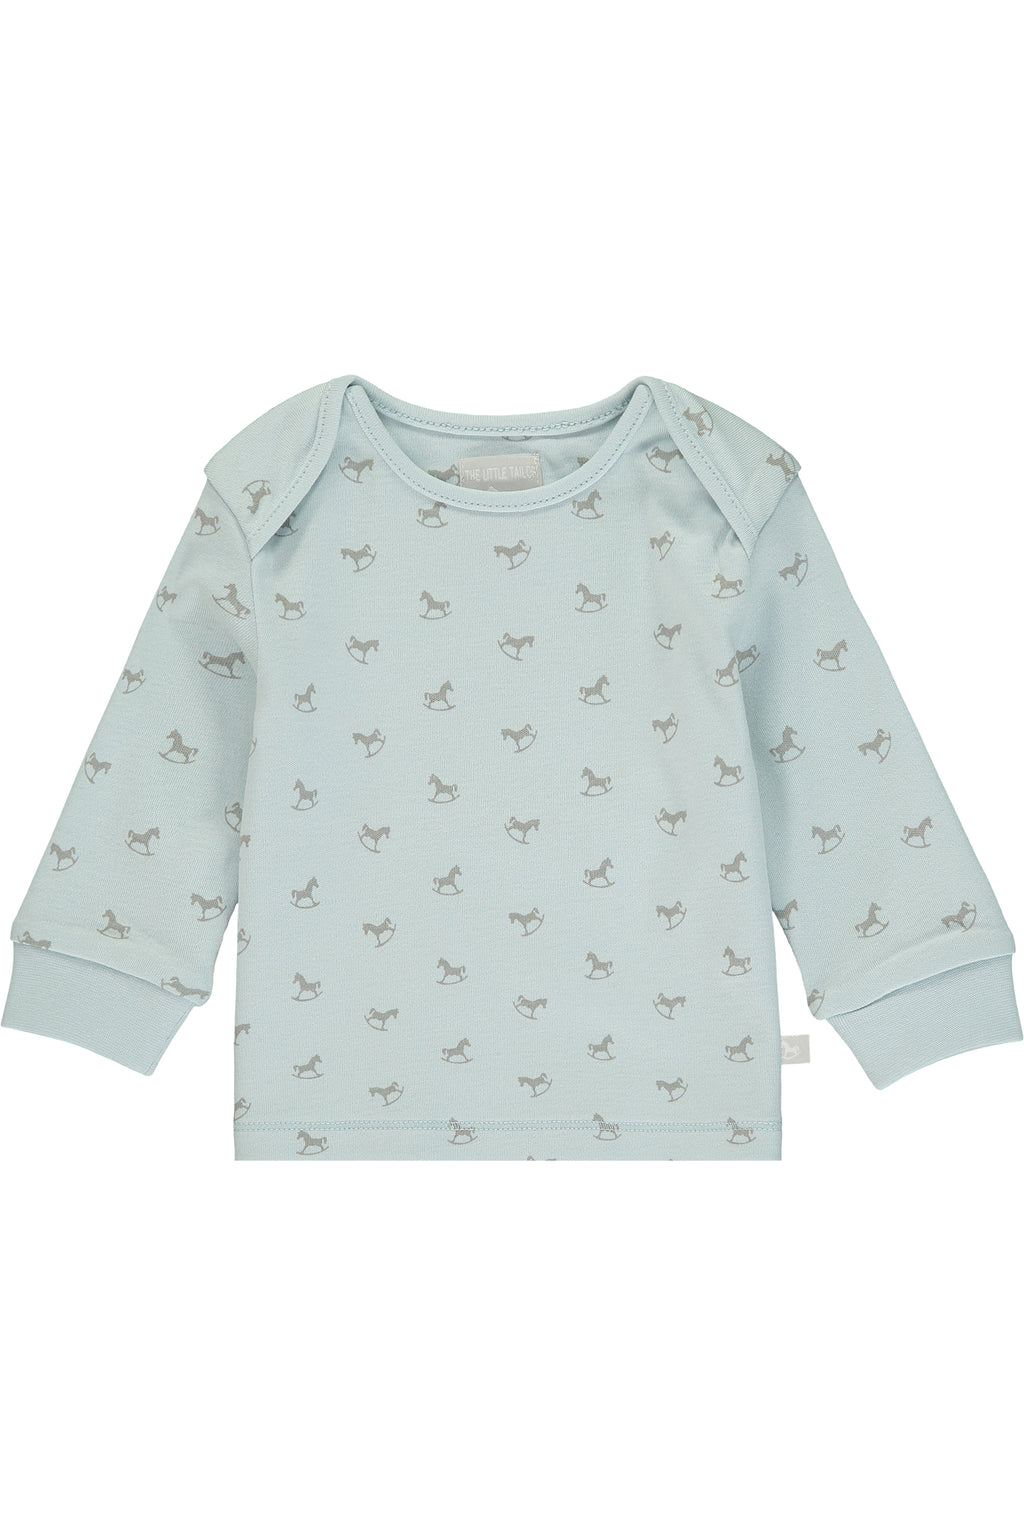 Super Soft Jersey Rocking Horse Top - blue